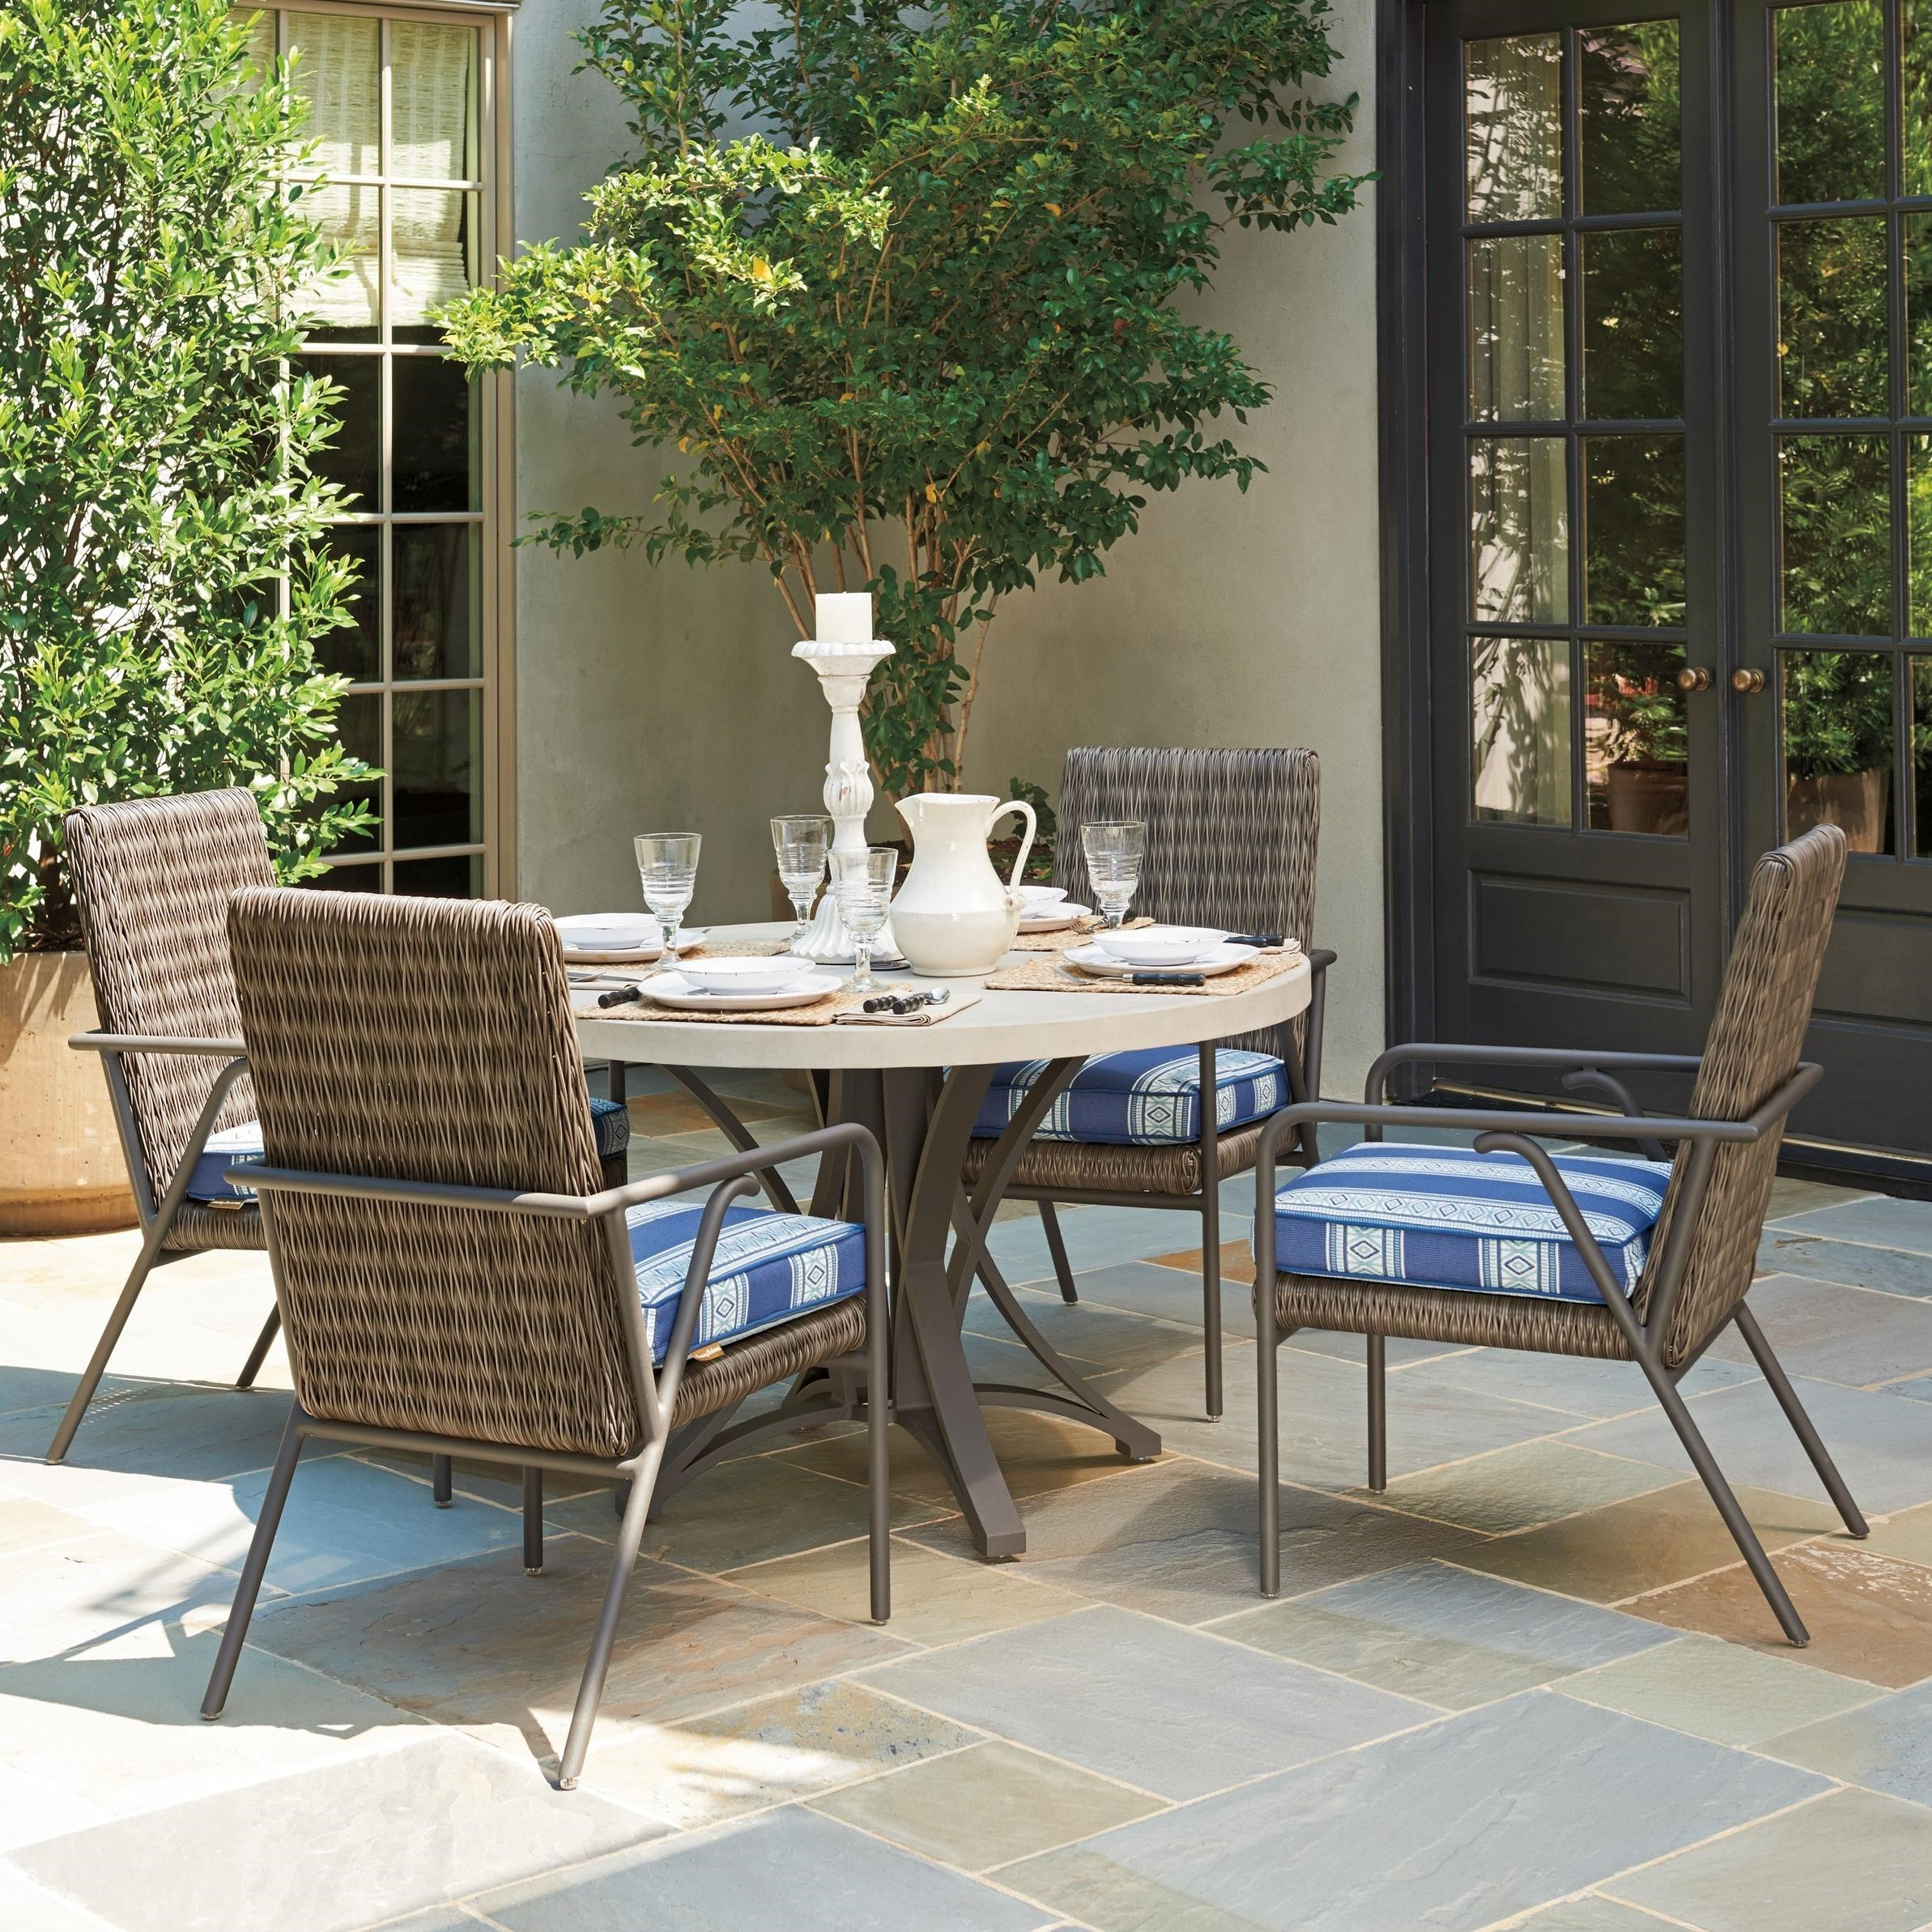 Cypress Point Ocean Terrace 5 Pc Outdoor Dining Set by Tommy Bahama Outdoor Living at Baer's Furniture